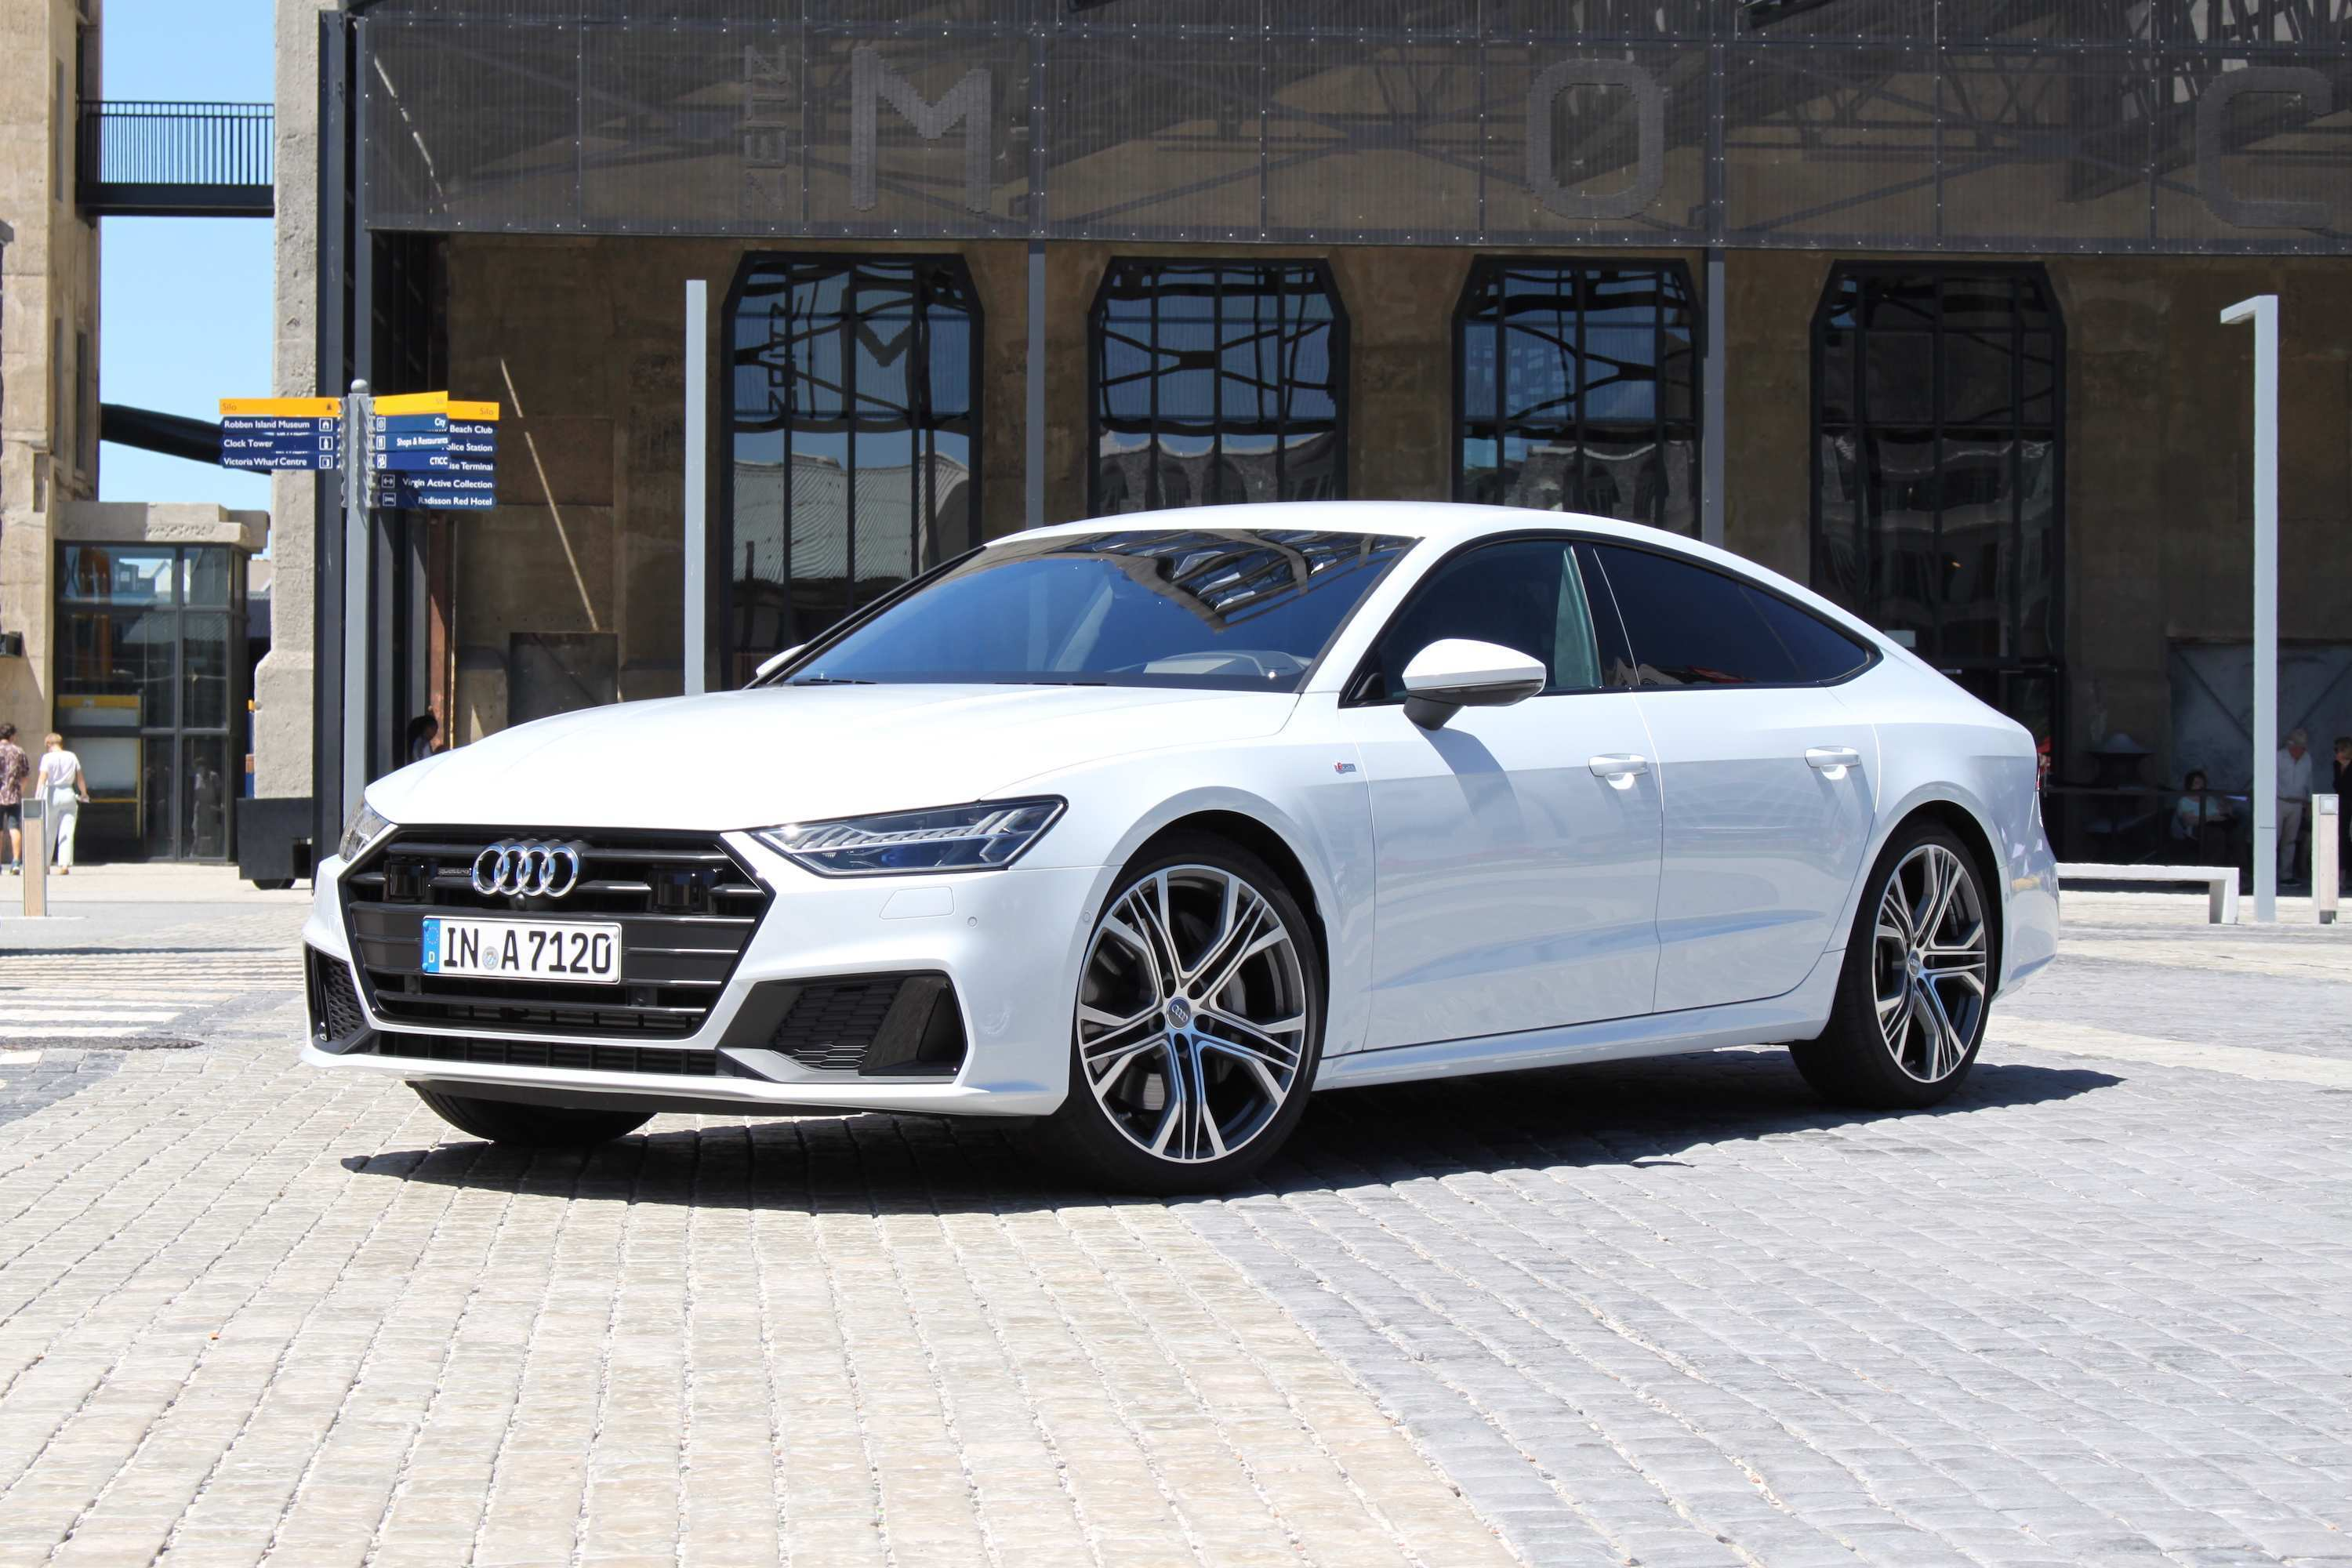 21 Concept of 2019 Audi A7 Debut Ratings with 2019 Audi A7 Debut